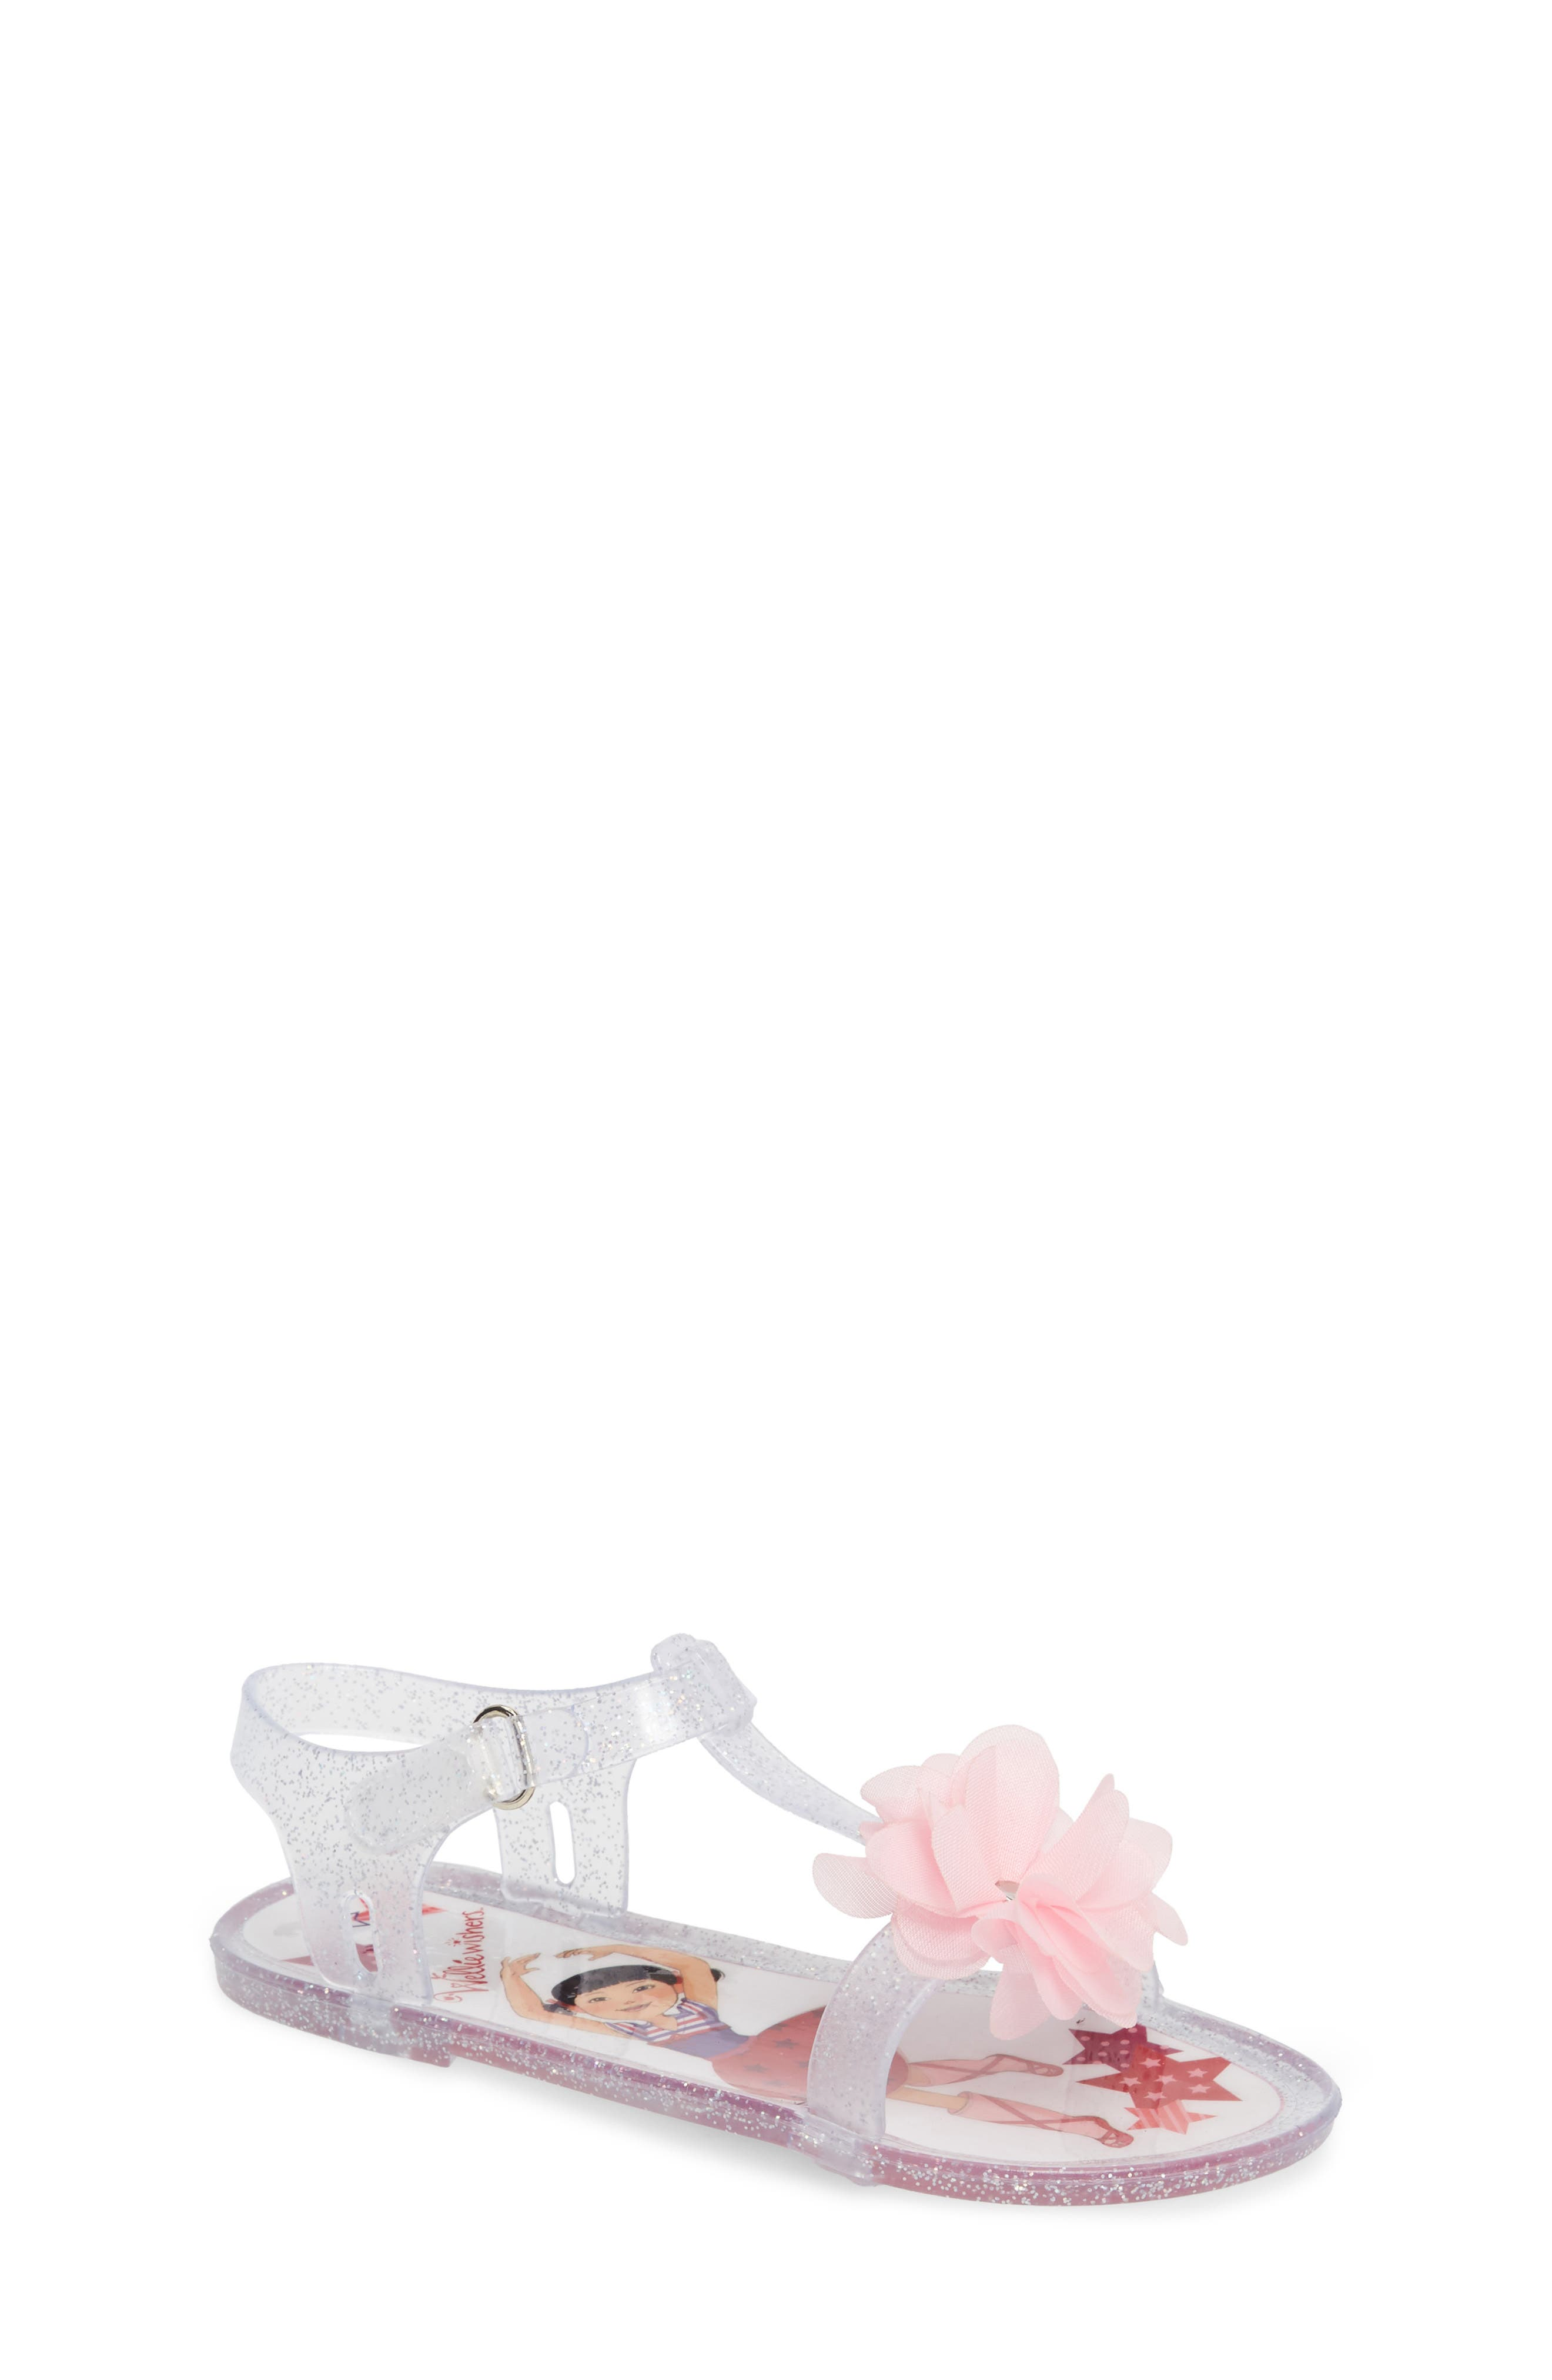 WellieWishers from American Girl Emerson Tulle Glitter Jelly Sandal (Walker, Toddler & Little Kid)